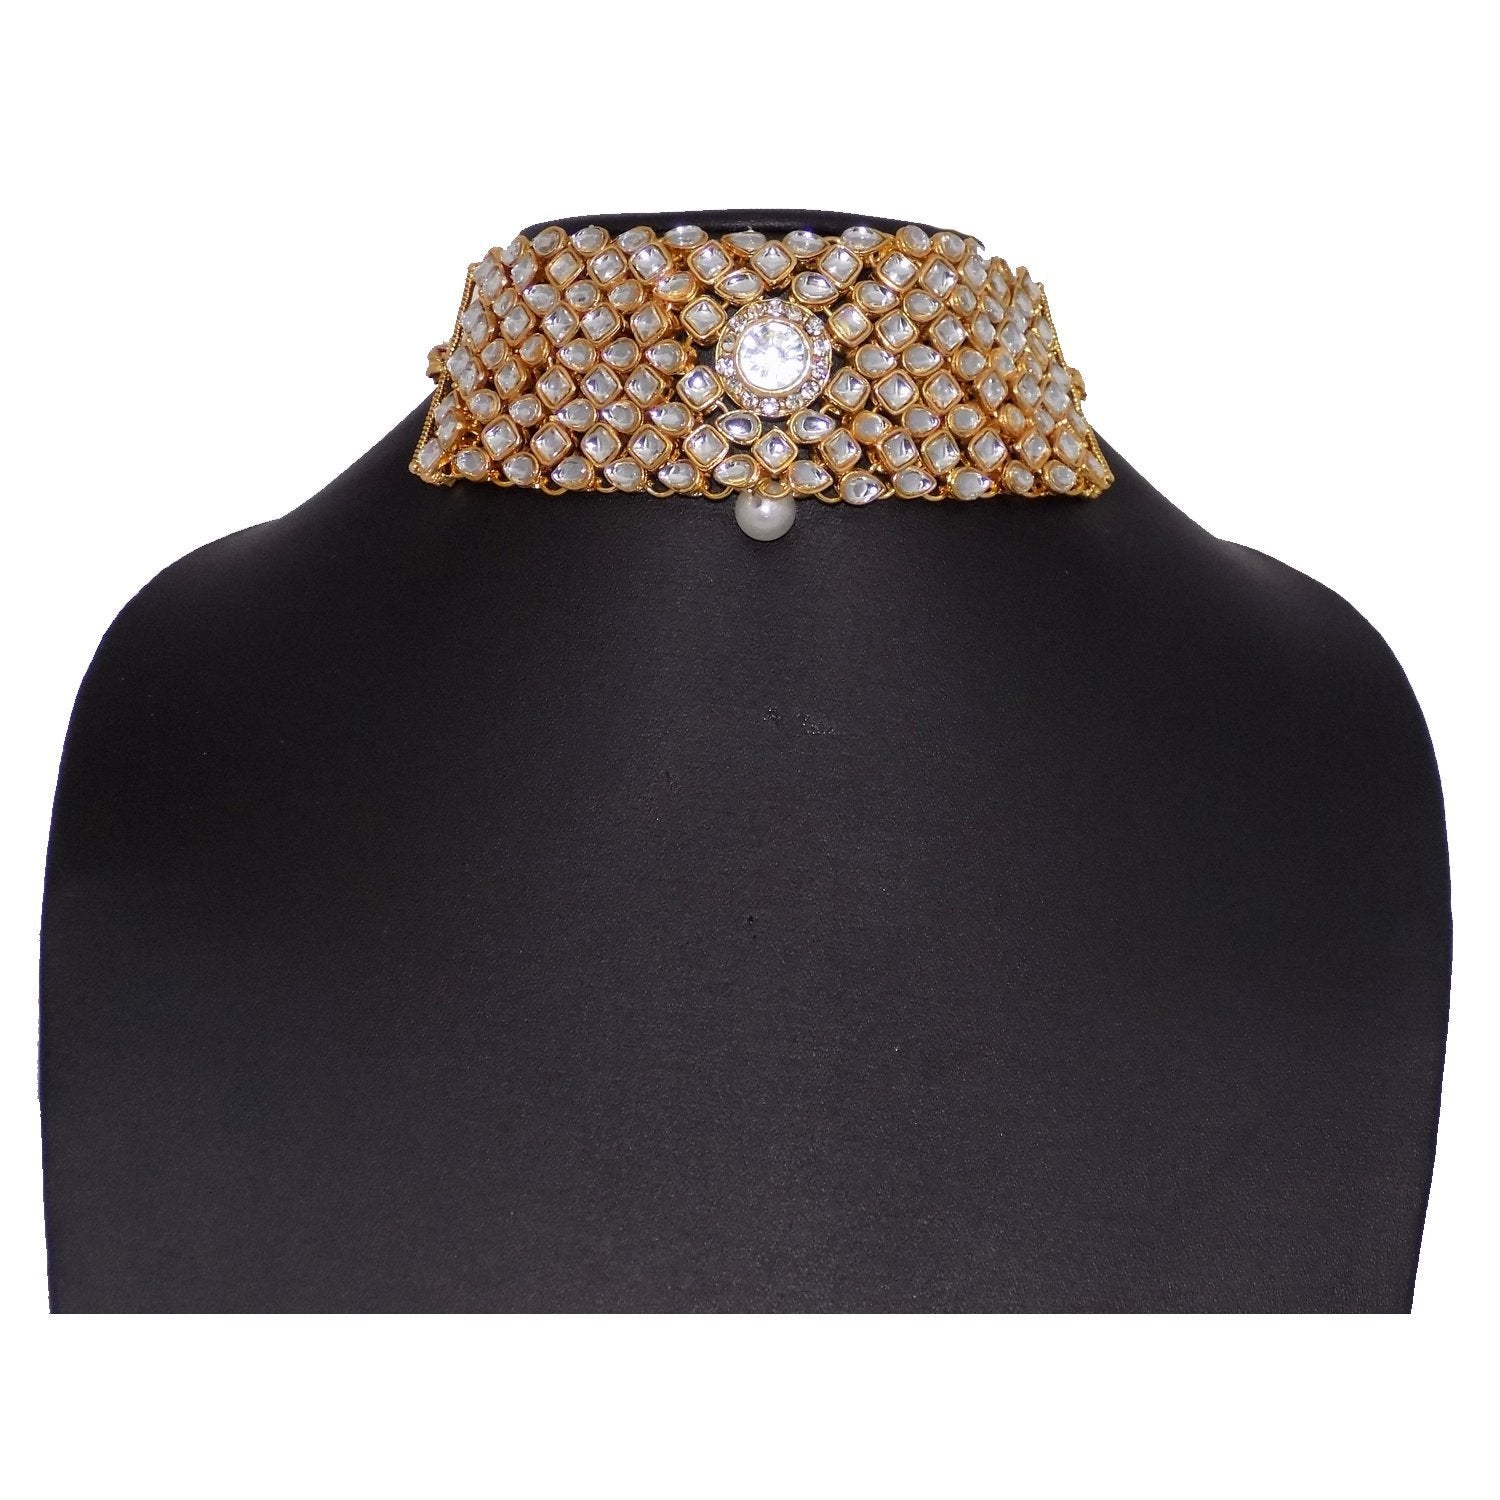 Diamond Choker Necklace with Maang Tikka Jewellery Set - Bagaholics Gift